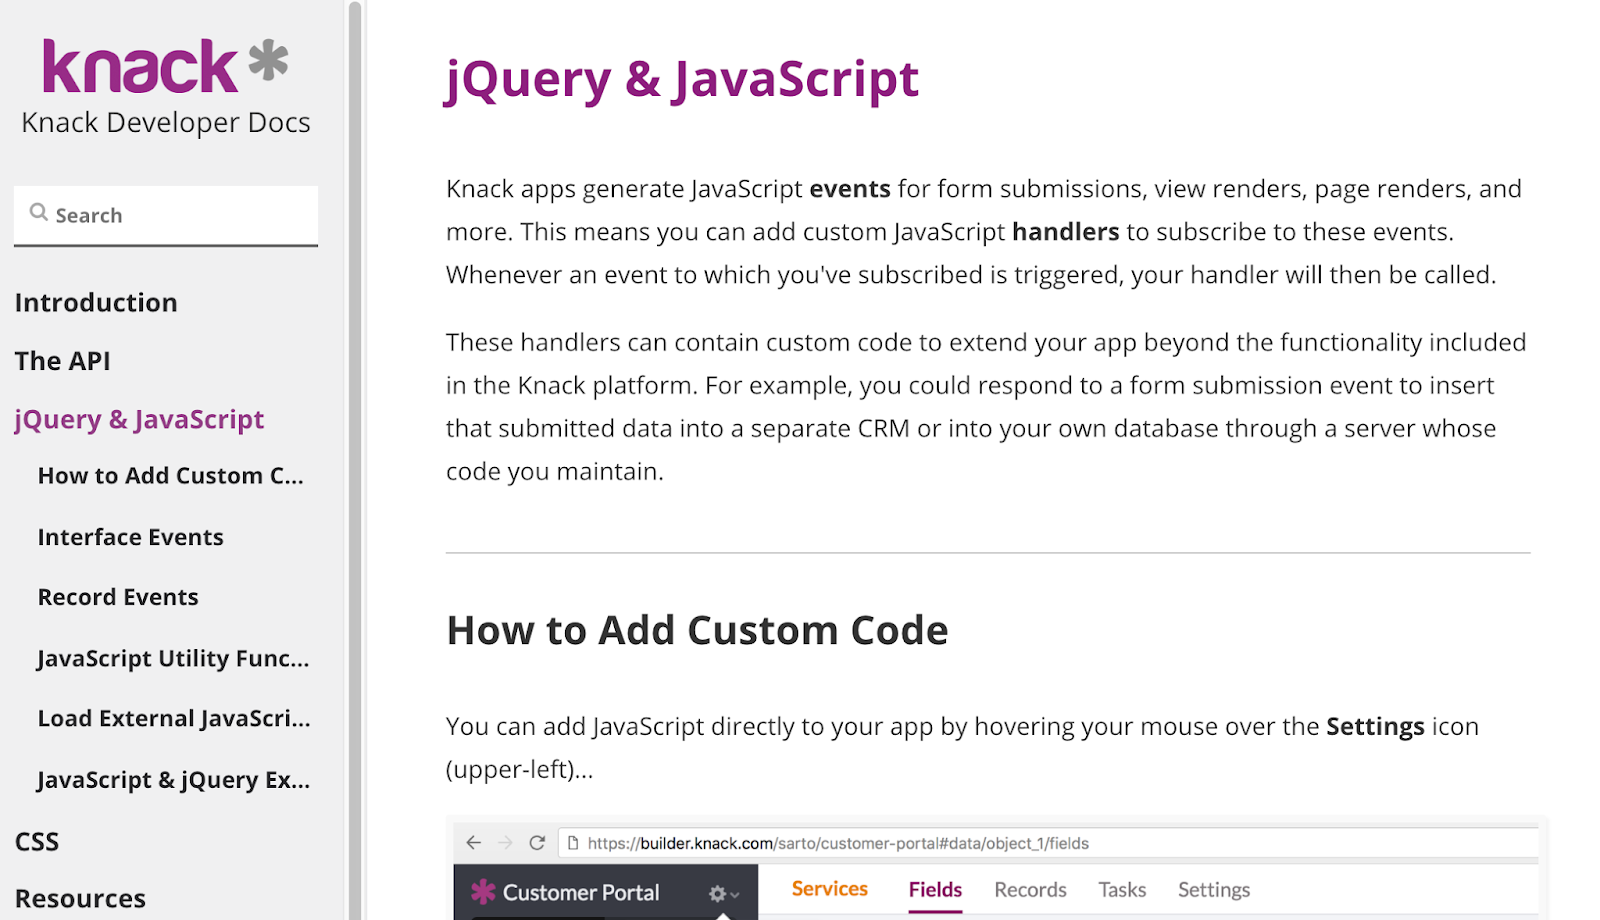 Screenshot of the jQuery and Javascript section of Knack's Developers Docs